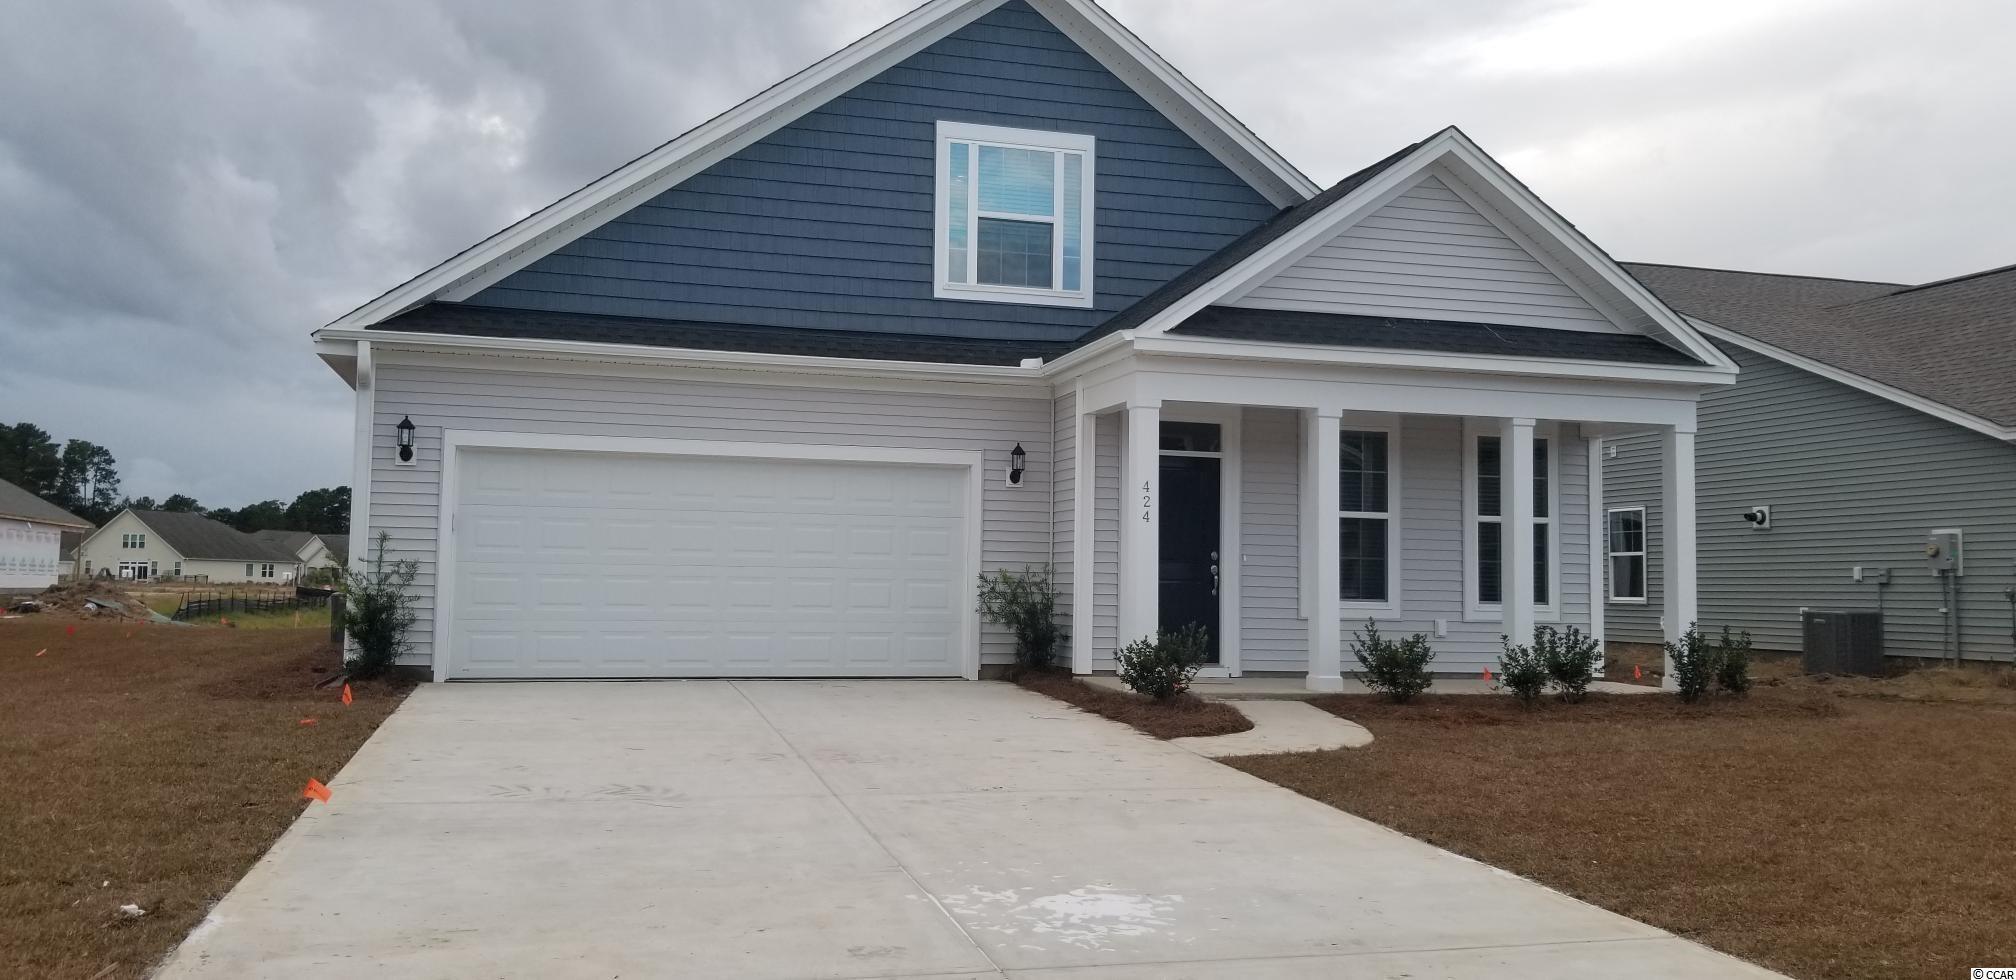 Take advantage of Pre-construction Pricing for a SHORT time!! ---TO BE BUILT--- Fullerton plan-You choose the home site!  Enjoy life living near the beach, The Marsh Walk, Brookgreen Gardens and several golf courses in this well appointed, affordable home in Murrell's Inlet. Evans Park is so conveniently located within the International Club making it just a few minutes to 3 grocery stores, 5-10 minutes to oodles of restaurants, 10 minutes to Garden City beach and the Marsh Walk with tons of food and great music!!   The Fullerton 2 story home is so open and airy! 12' high ceilings in your family room, kitchen and dining area! Optional boxed ceilings in the Primary Bedroom would give you 10 ft high ceilings in your bedroom!  Walk out to your included 12' x 14' covered rear porch now opens up the outdoor living for you too!! Add the porch fireplace for extended use in the cooler months! With the 2168 Heated sq ft, you'll have plenty of room to entertain in the large family room, spacious kitchen and a formal dining room! Each of the 3 bedrooms have their own bathroom! Walk in attic storage for all of that extra stuff we have. Long laundry room has an option of upper and lower cabinetry for even more storage in this home!!   Just some of the Fullerton plan Included Features: Stainless Steel appliances, Staggered height cabinets with large crown molding, granite counter tops, Luxury Vinyl Plank flooring from front door to back door in main common spaces, comfort-height vanity with drawer stack in primary bath, framed mirrors in all baths, double racked closet  in Primary closet, Radiant Barrier Roof Sheathing to keep out the heat of the sun's rays, a Lenox HVAC System designed and tested by independent 3rd Party, R-38 Attic Insulation, and a Rinnai Tankless hot Water Heater that you'll appreciate when you receive your lower monthly power bill. A built in lawn irrigation system is included and will save you thousands of dollars in upfront costs and you wont have to drag 